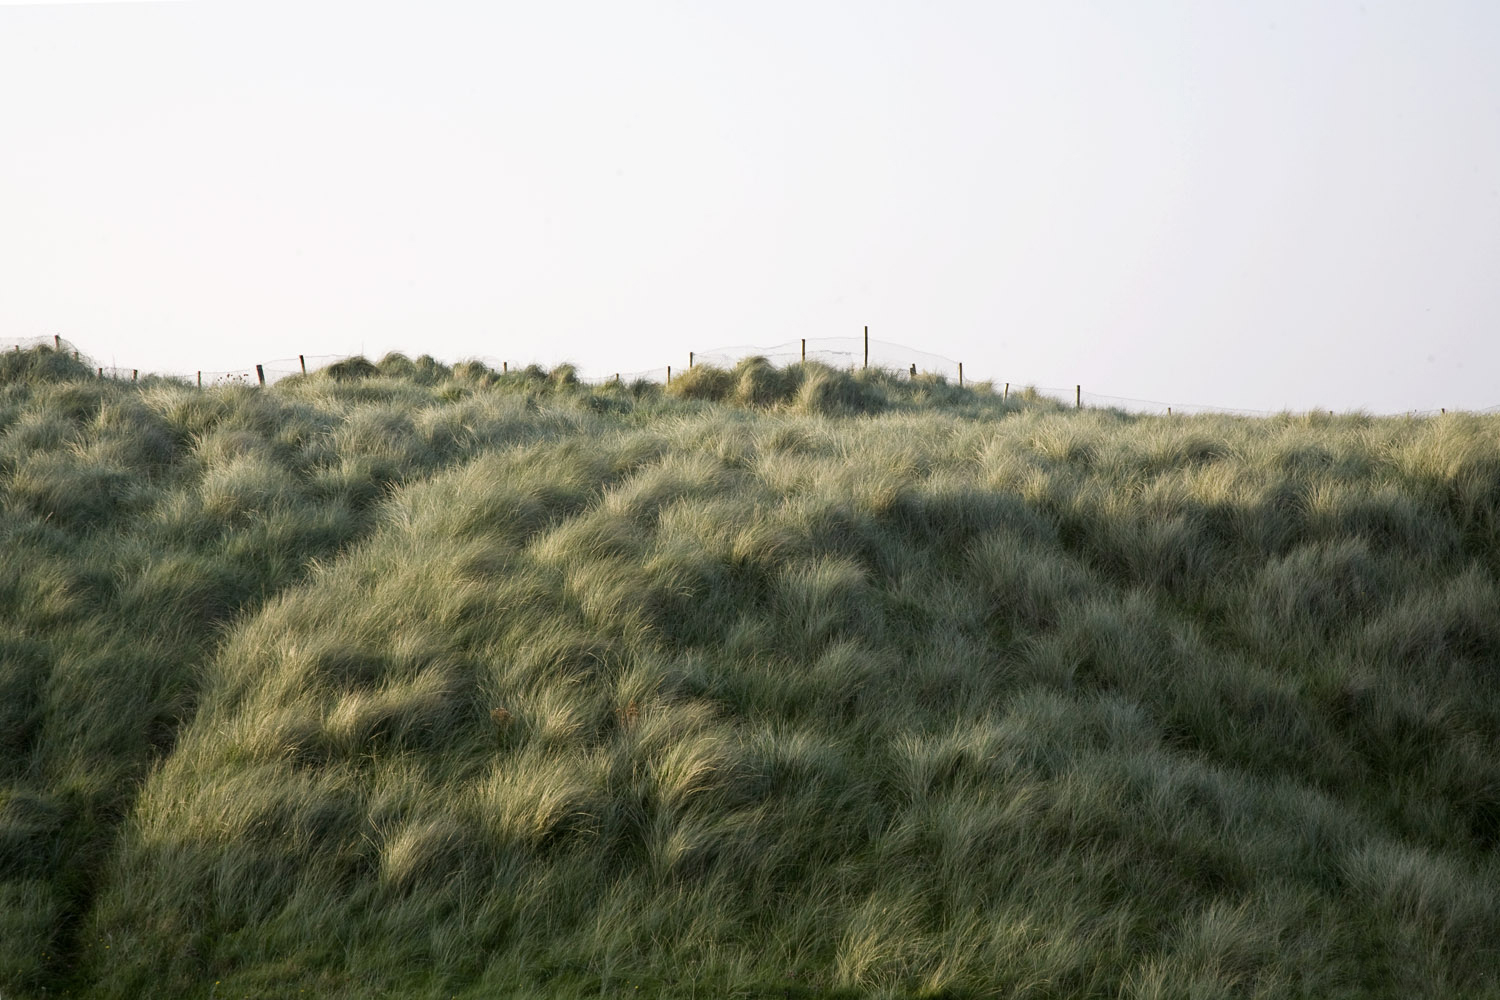 A documentary photograph of the fields in the west of ireland